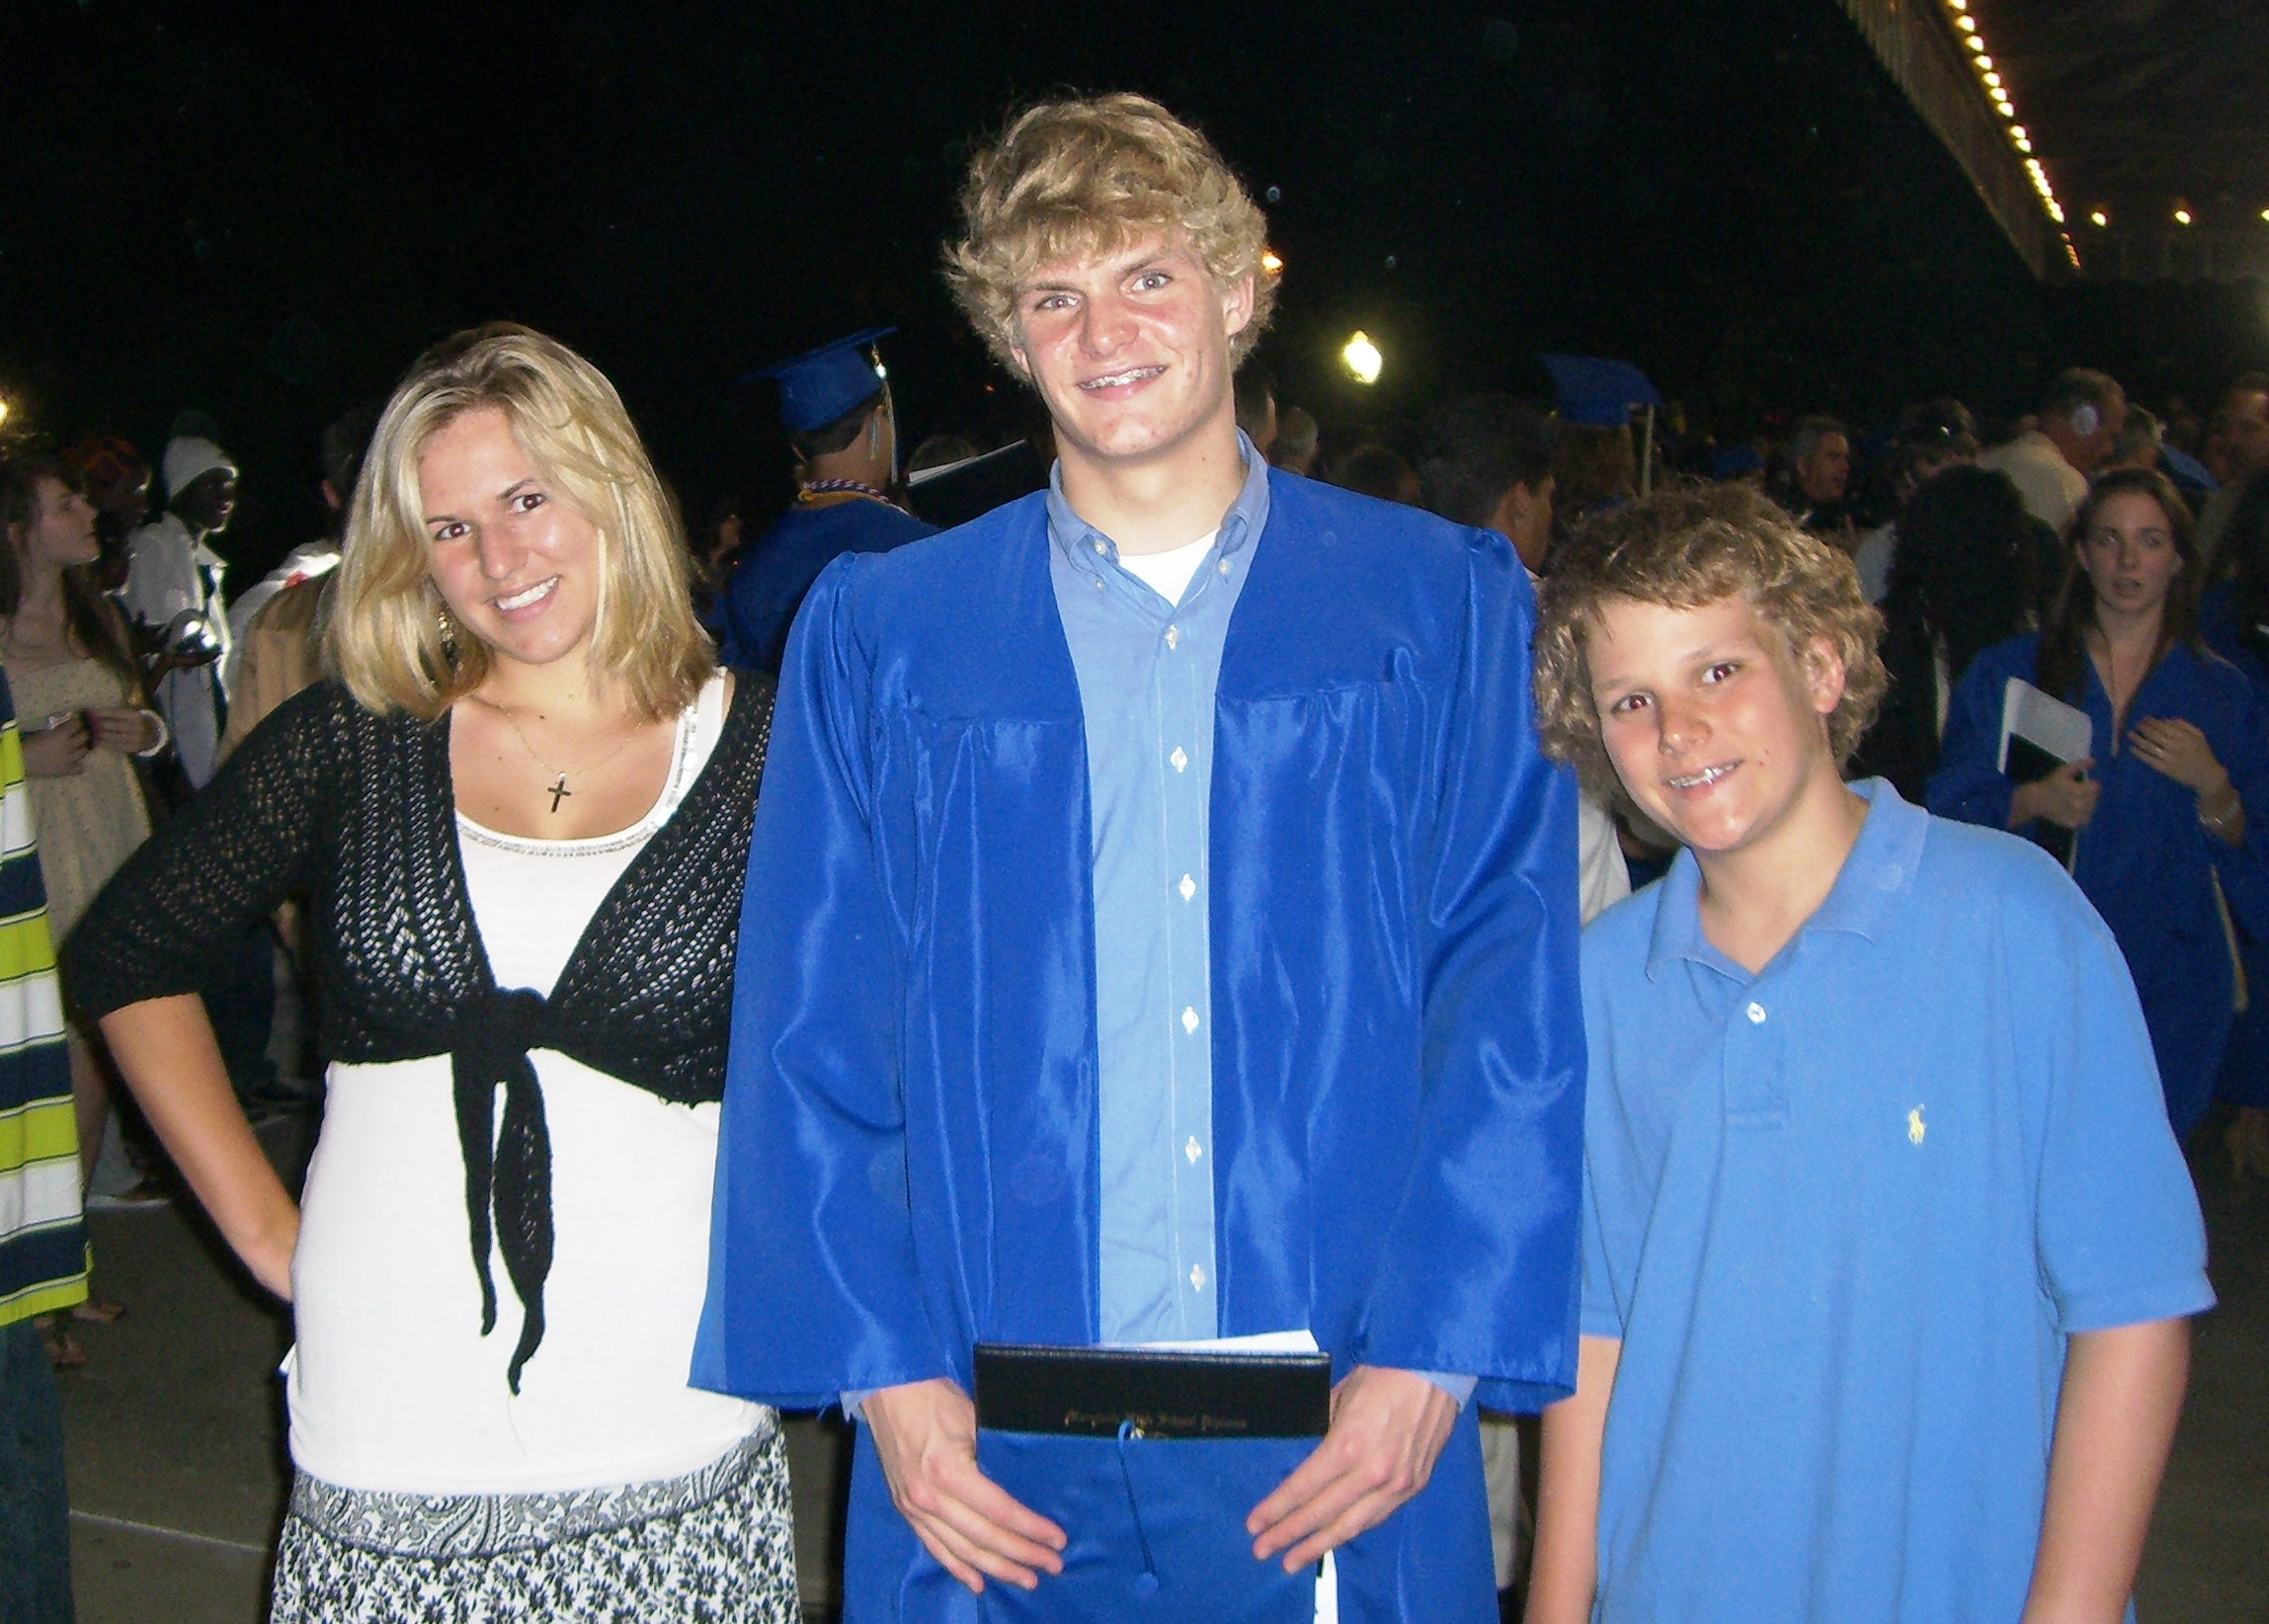 HHM4 and siblings at graduation